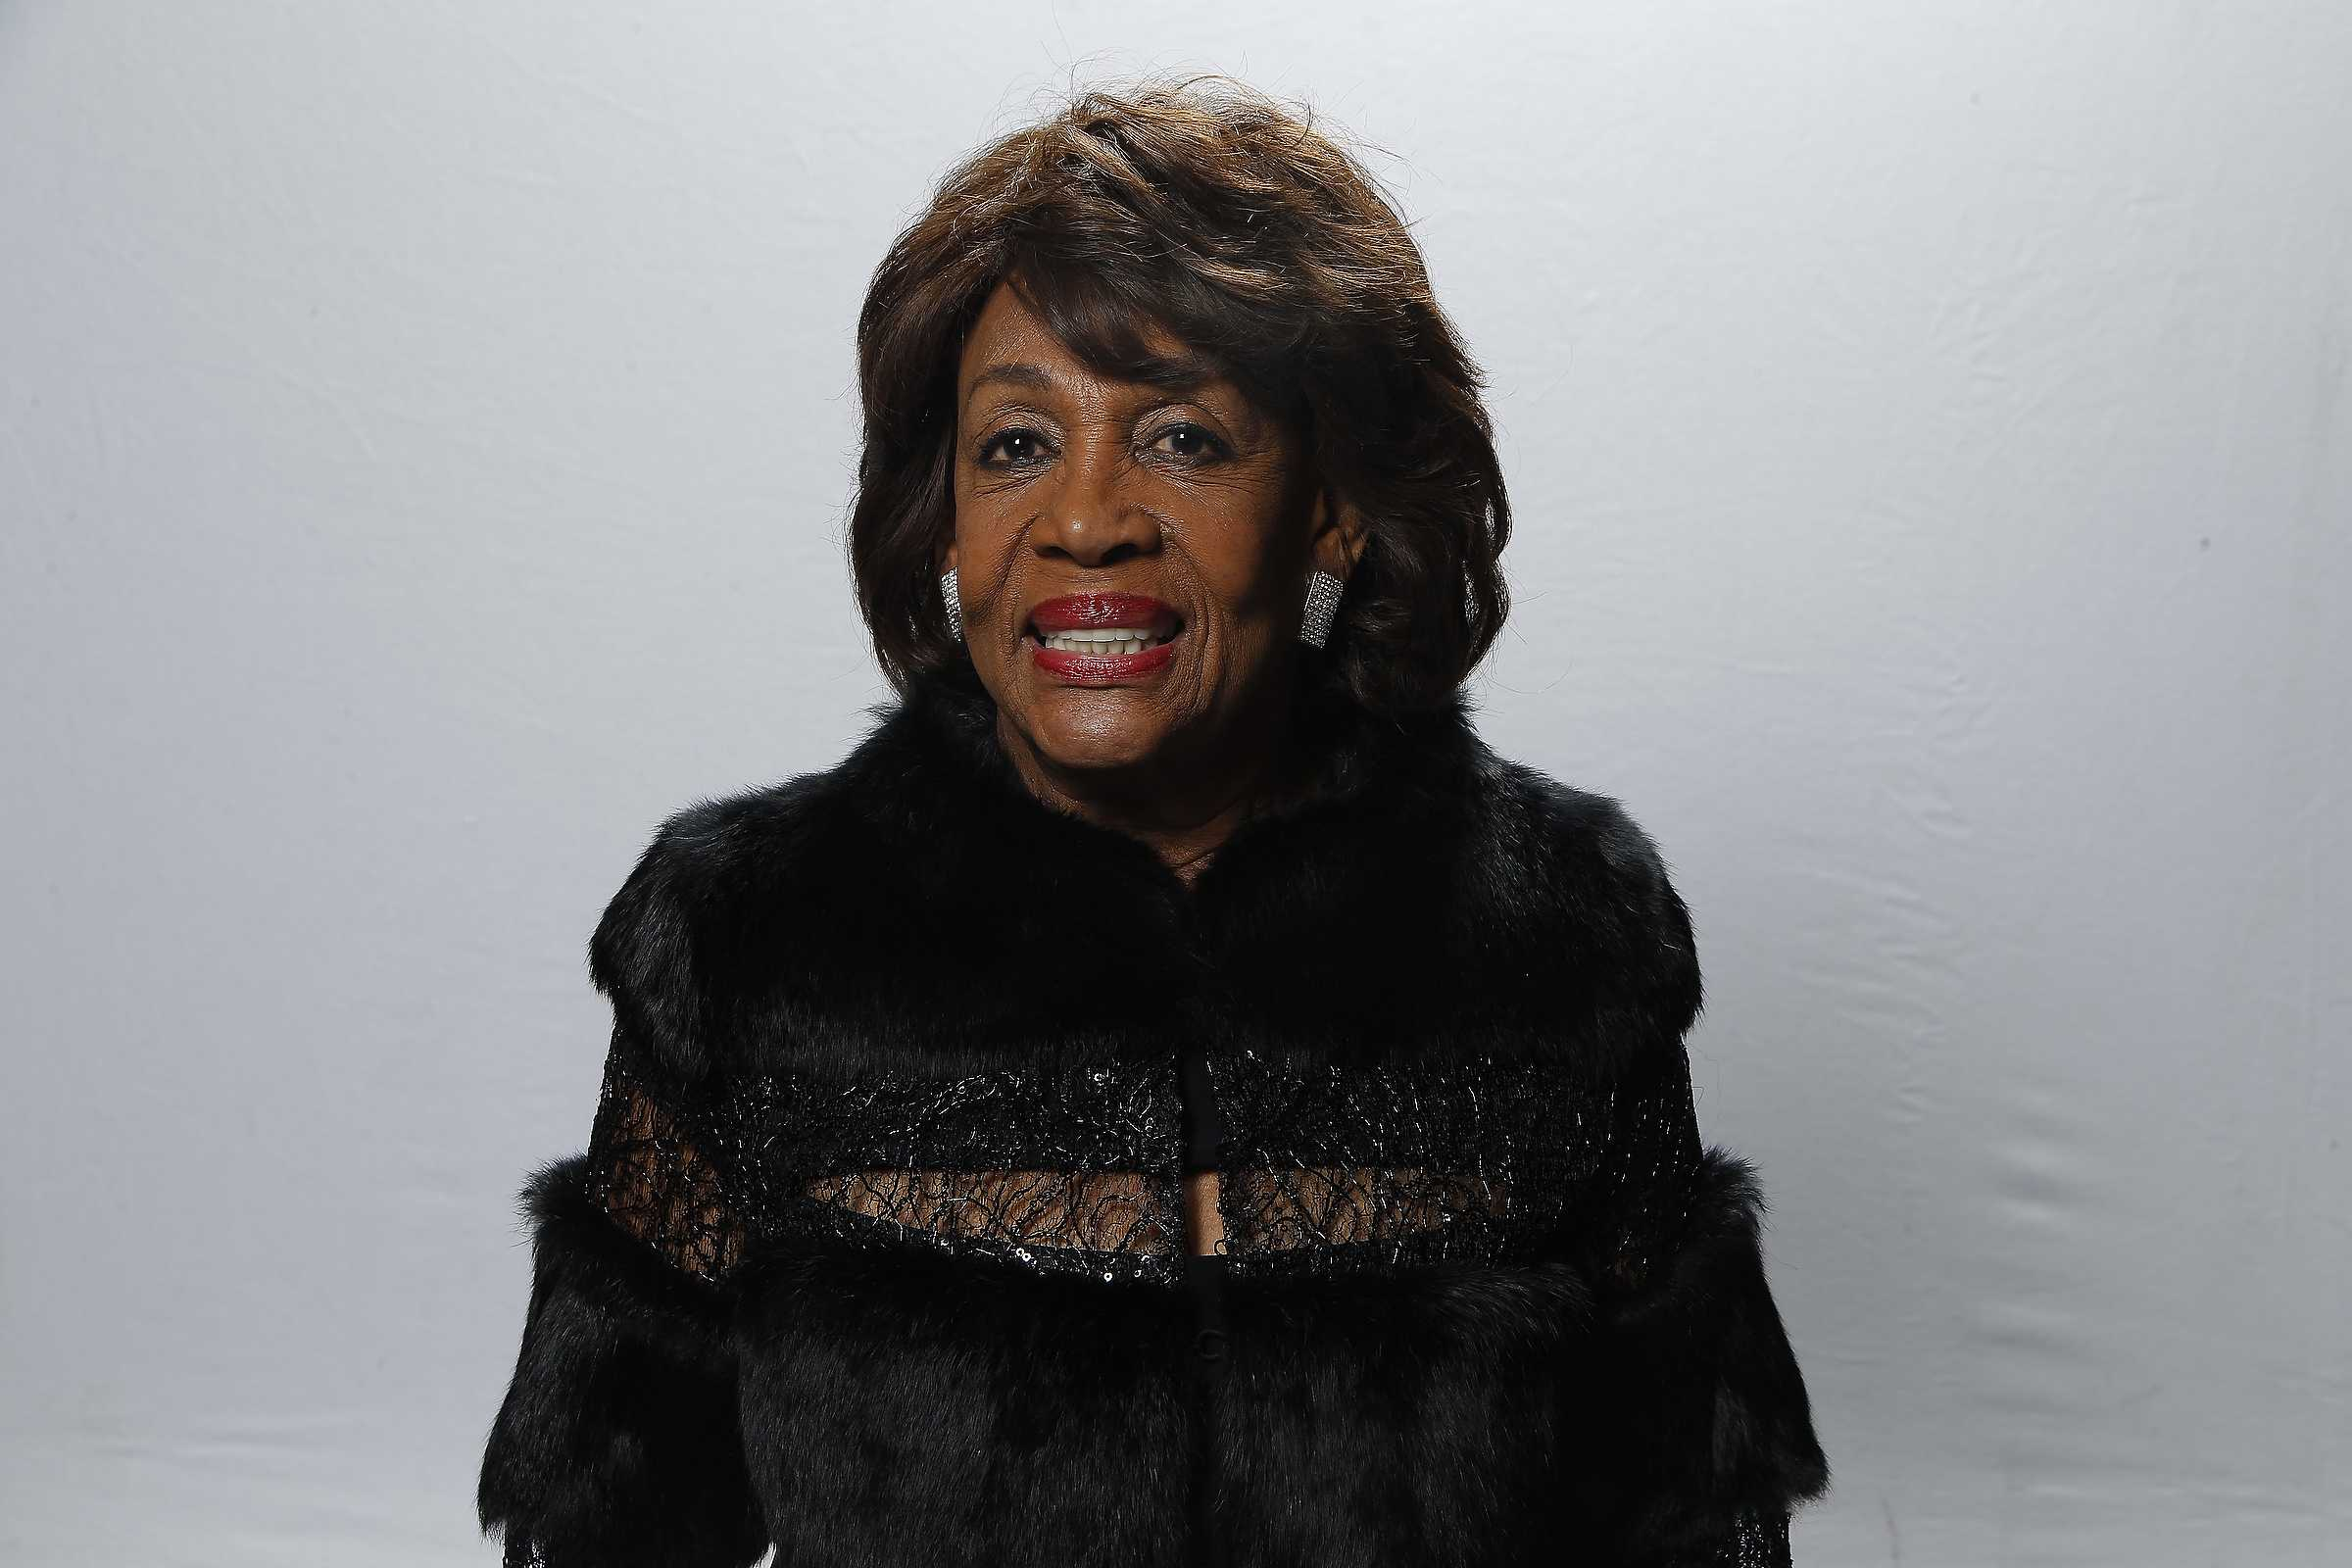 Rep. Maxine Waters (D-Calif.) attends the 48th NAACP Image Awards at Pasadena Civic Auditorium on February 11, 2017, in Pasadena, Calif. Waters was accused this week by Fox News host Bill O'Reilly of having hair that looked like